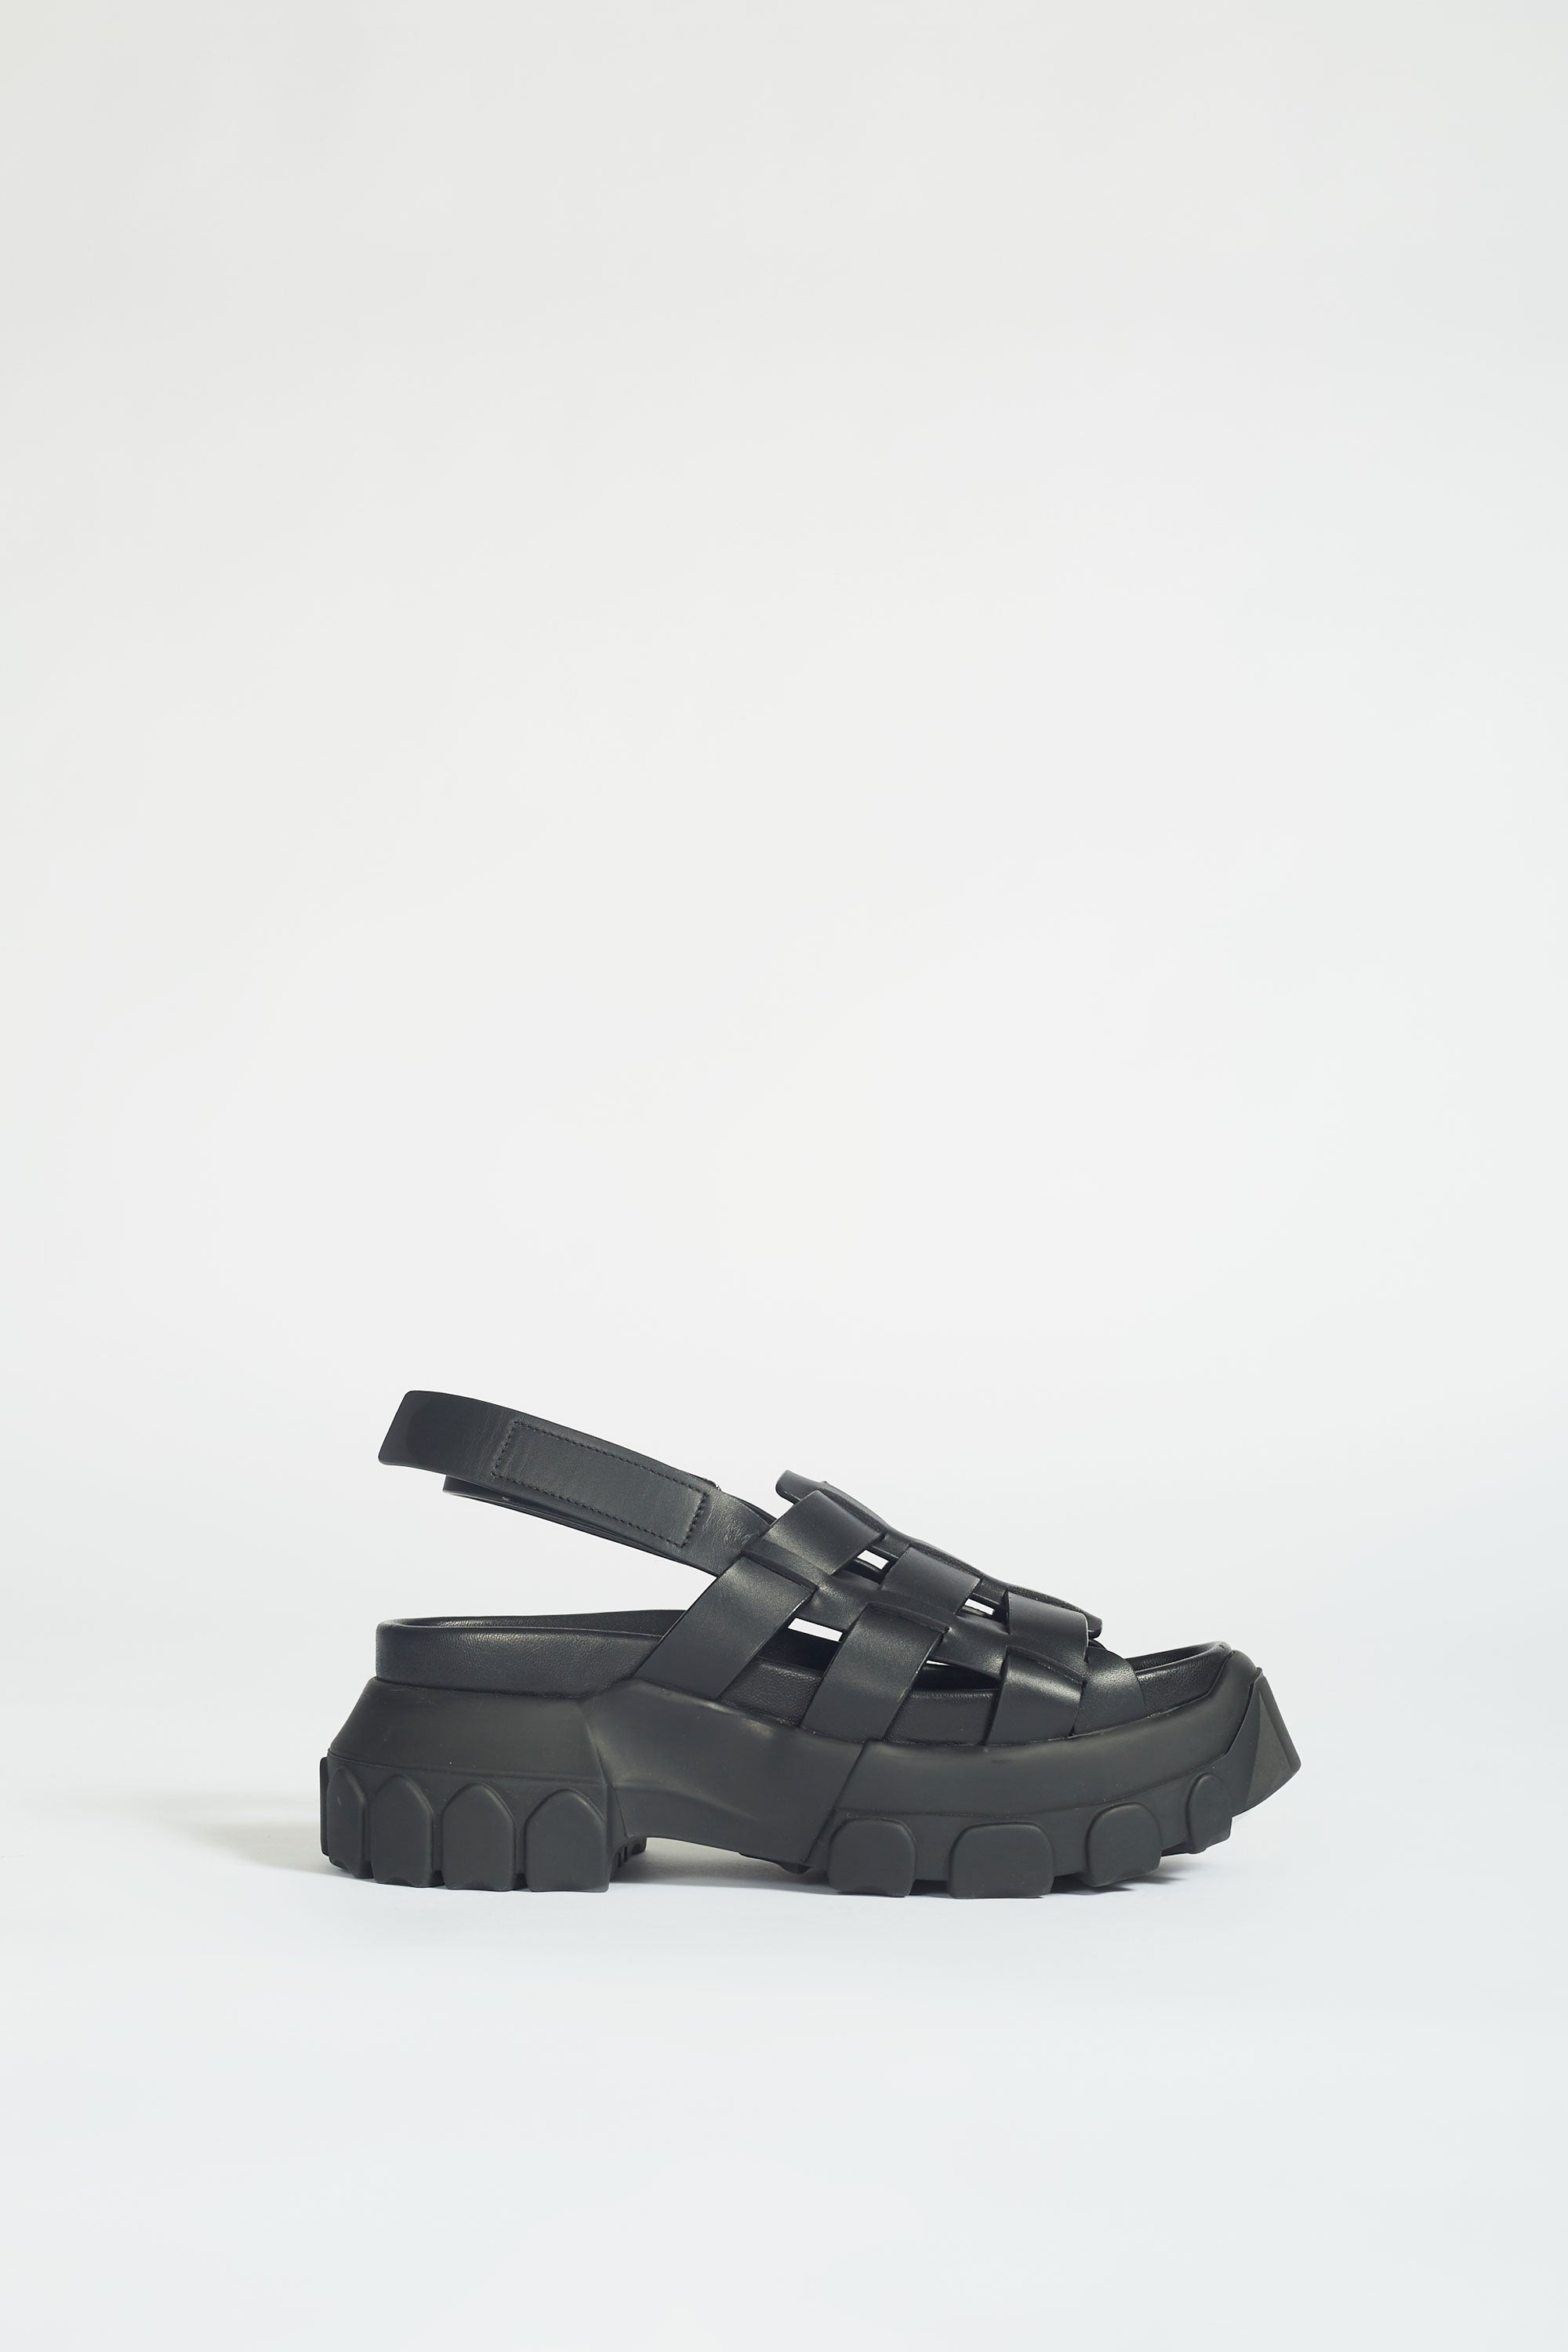 Rick Owens Hiking Sandal